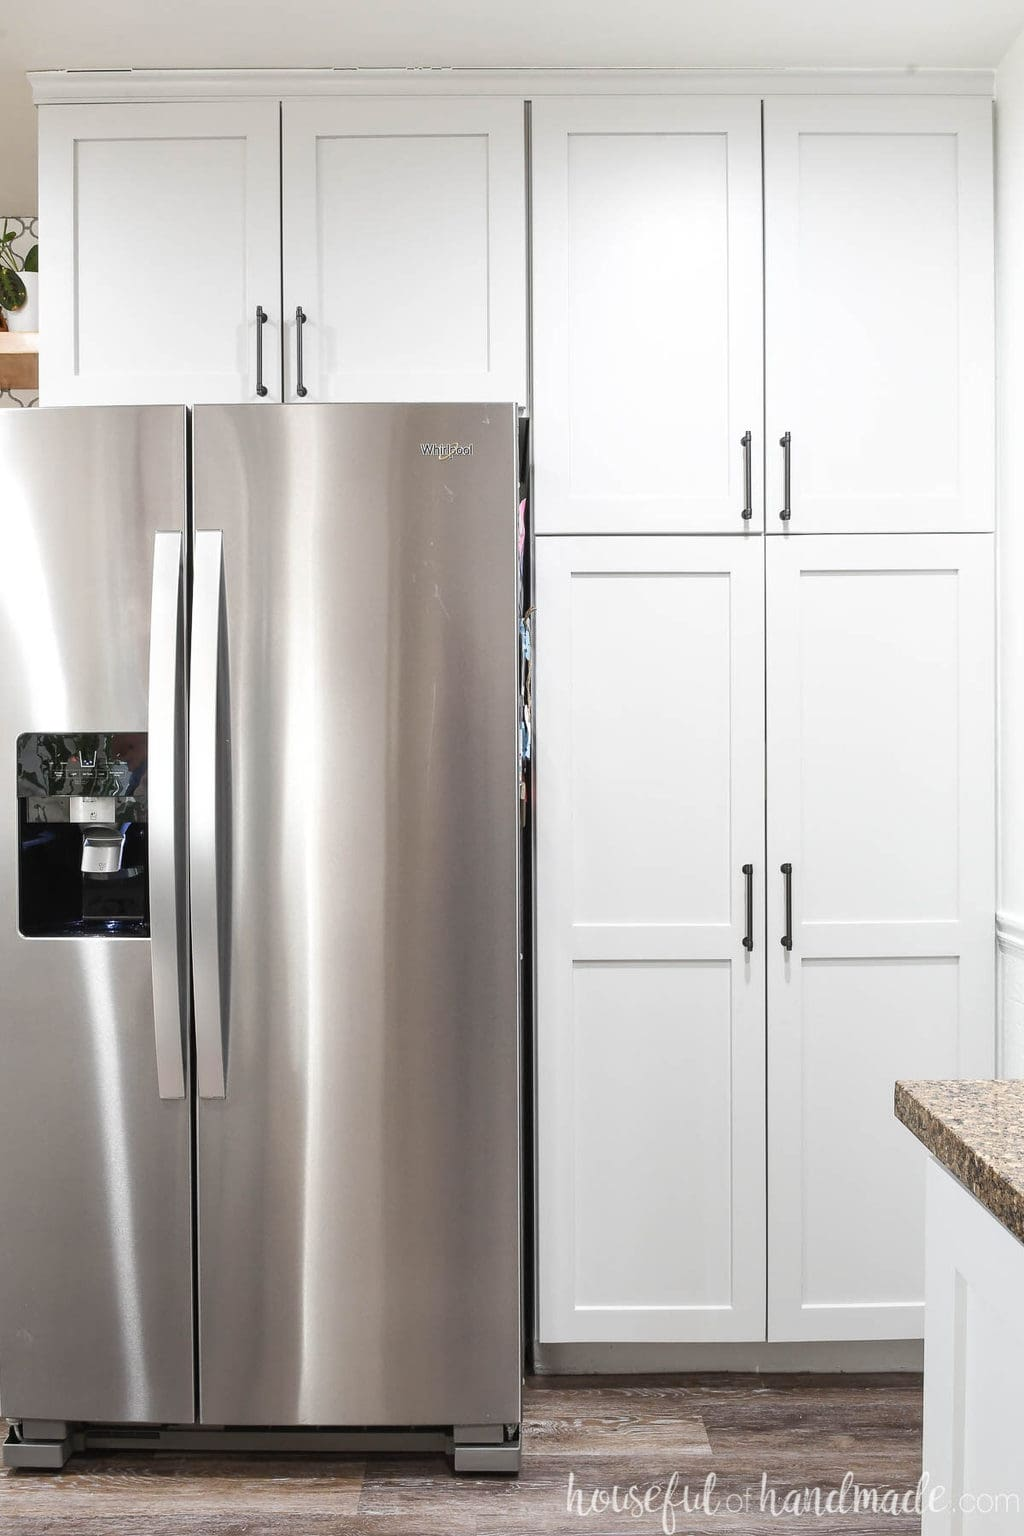 Bank of cabinets around a refrigerator with full overlay double cabinet doors.